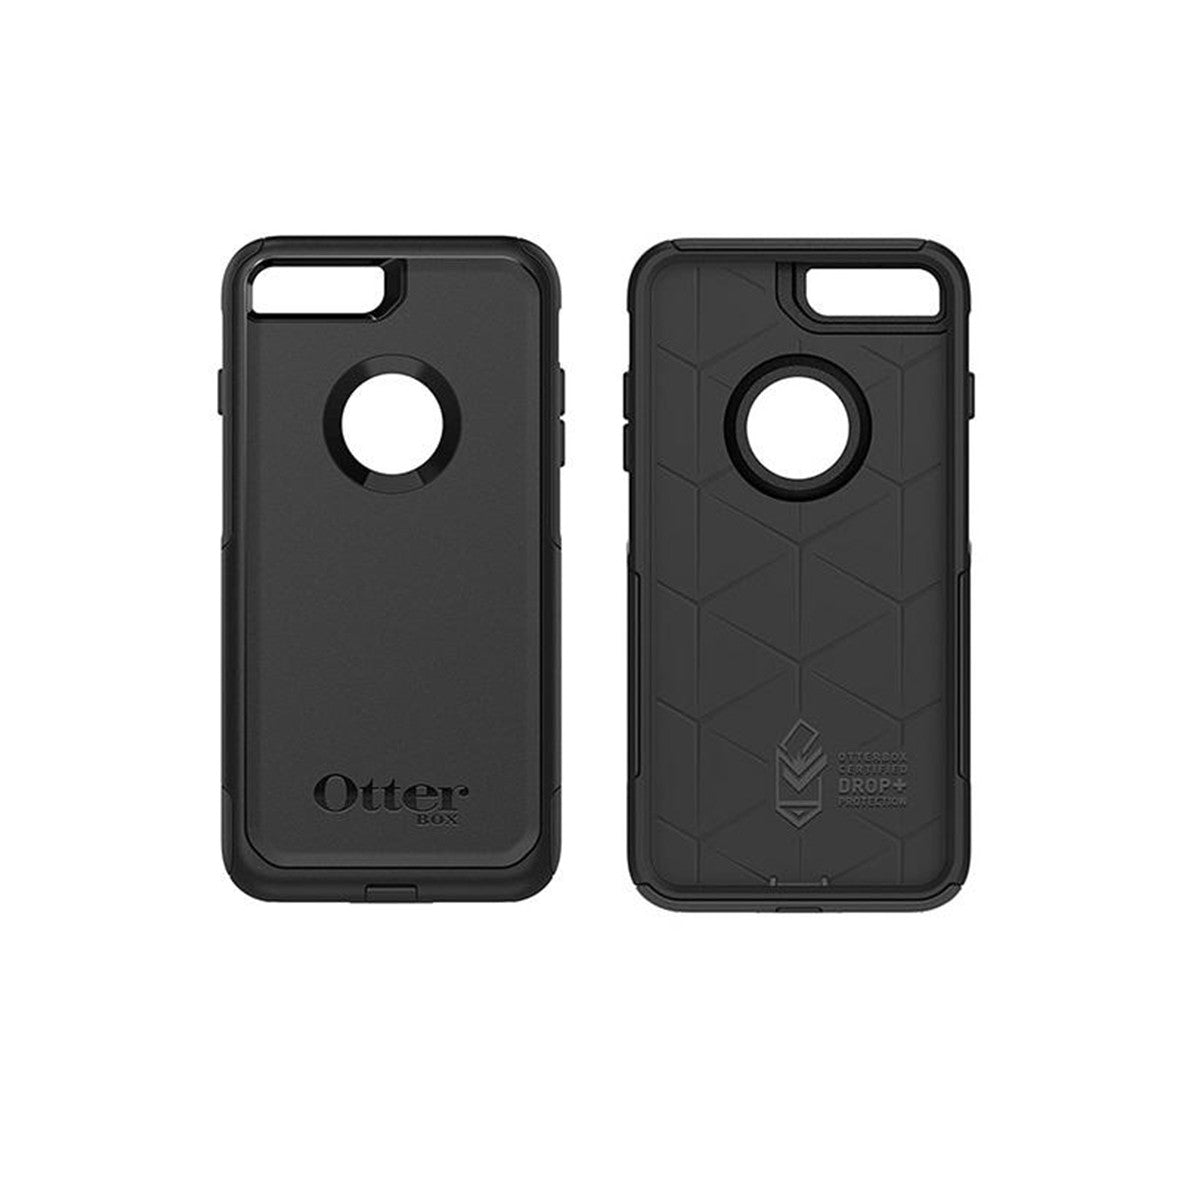 Genuine OtterBox Commuter iPhone 7 Plus Cover